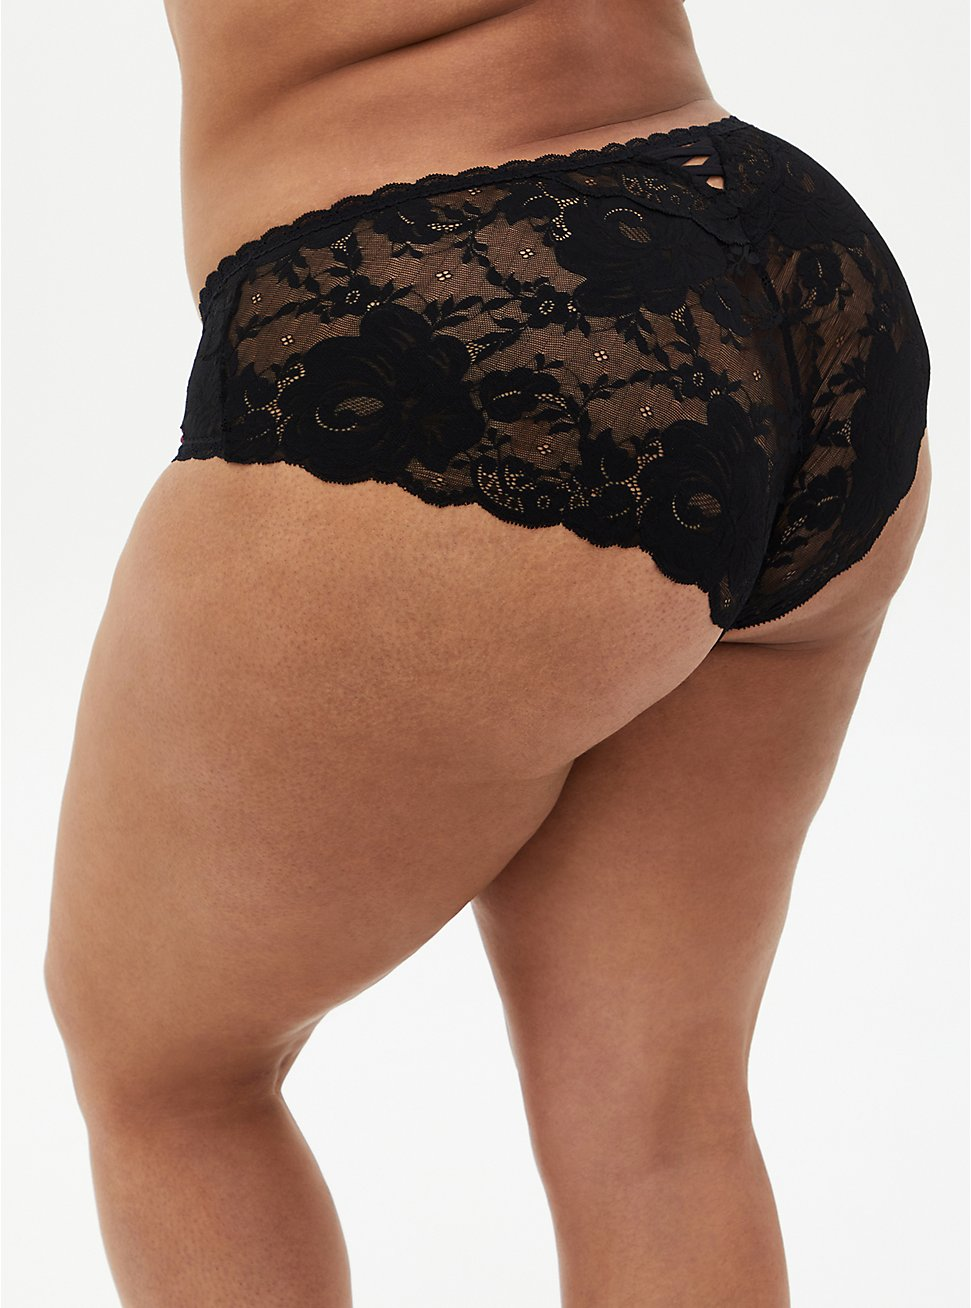 Plus Size Black Floral Microfiber & Lace Lattice Hipster Panty, ROSANNE FLORAL, hi-res